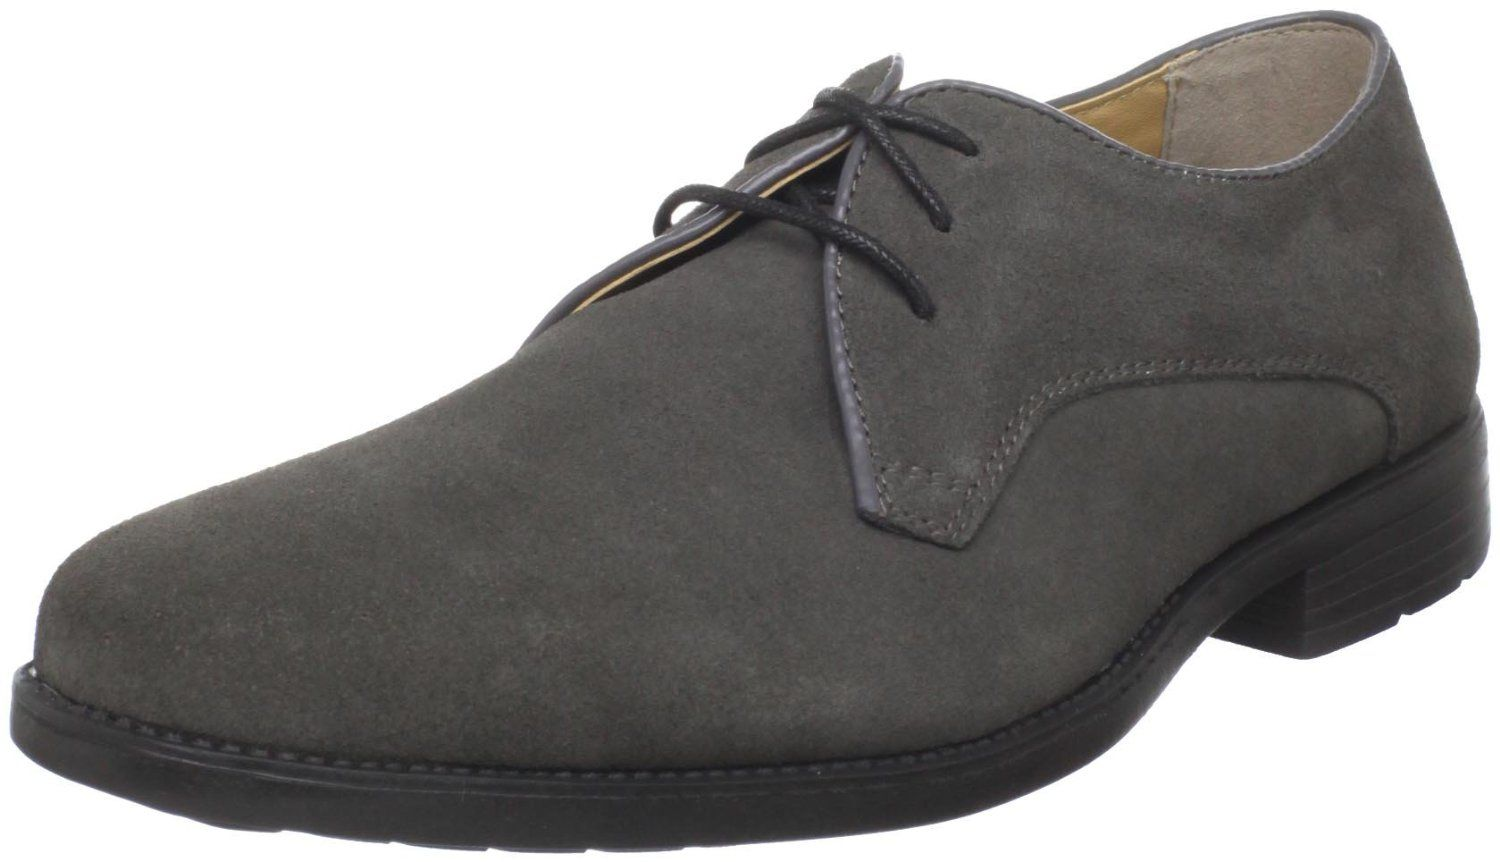 Hush Puppies Men S Hackman Oxford Chukka Boots Amazon Fashion Clothing Men S Shoes